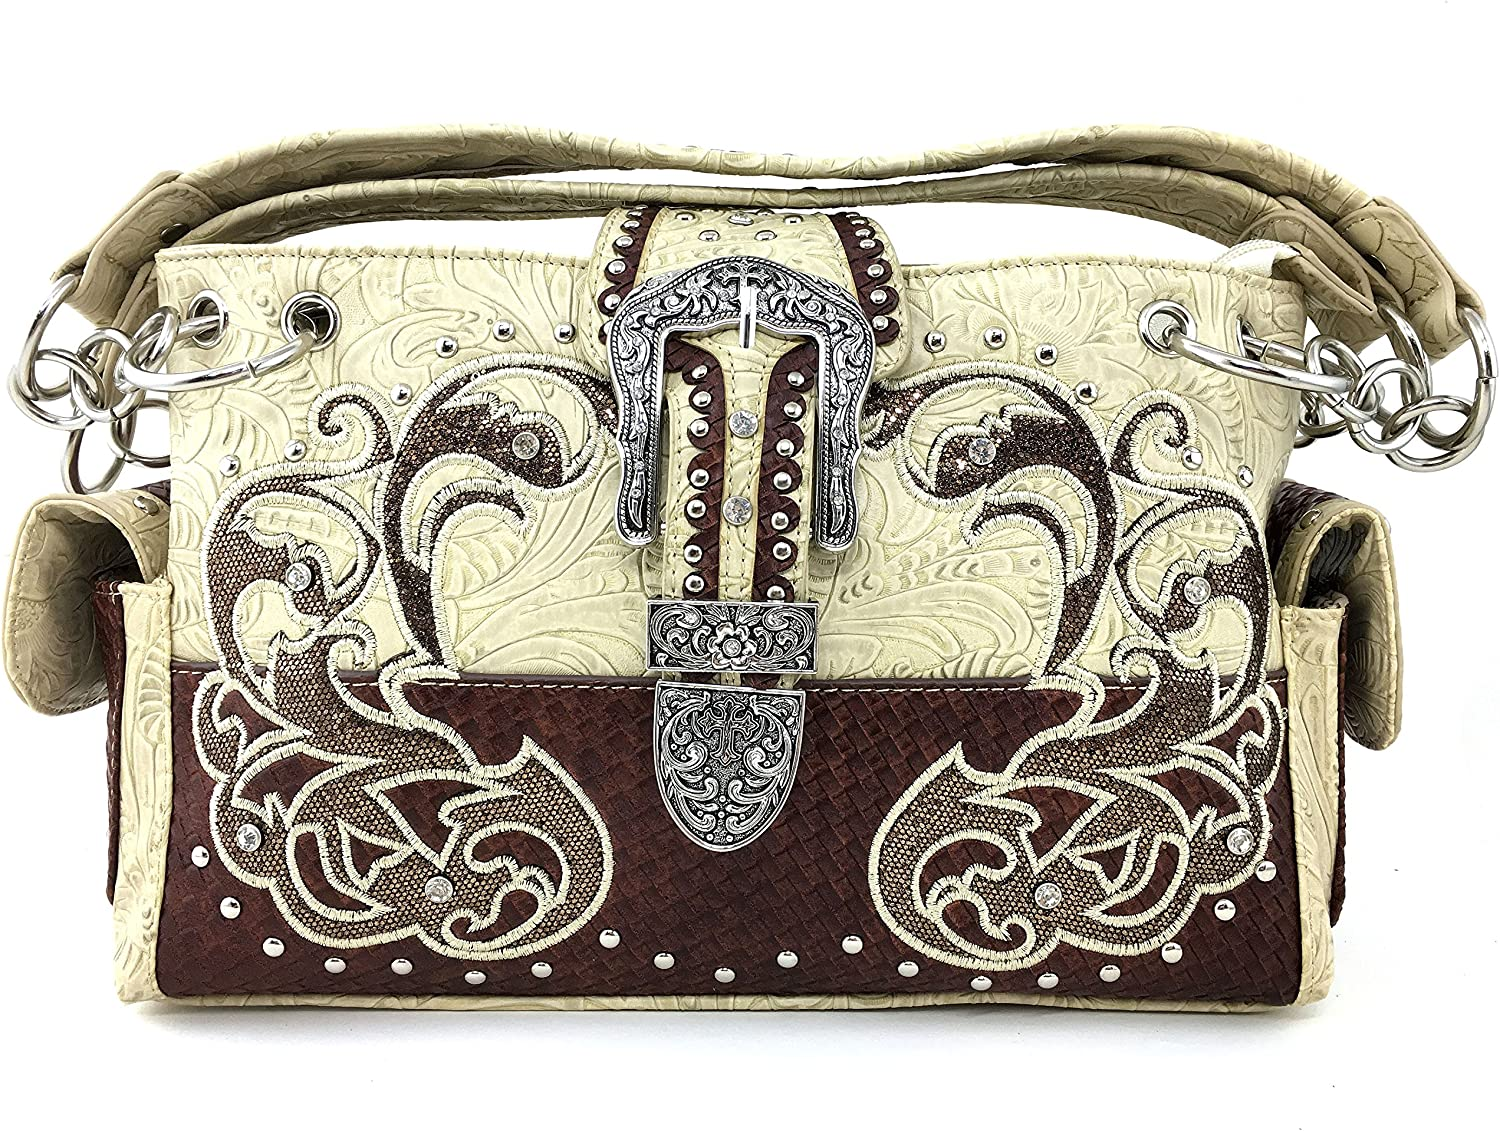 Justin West Purse Laser Cut Rhinestone Silver Buckle Cross Shape Concealed Carry Handbag